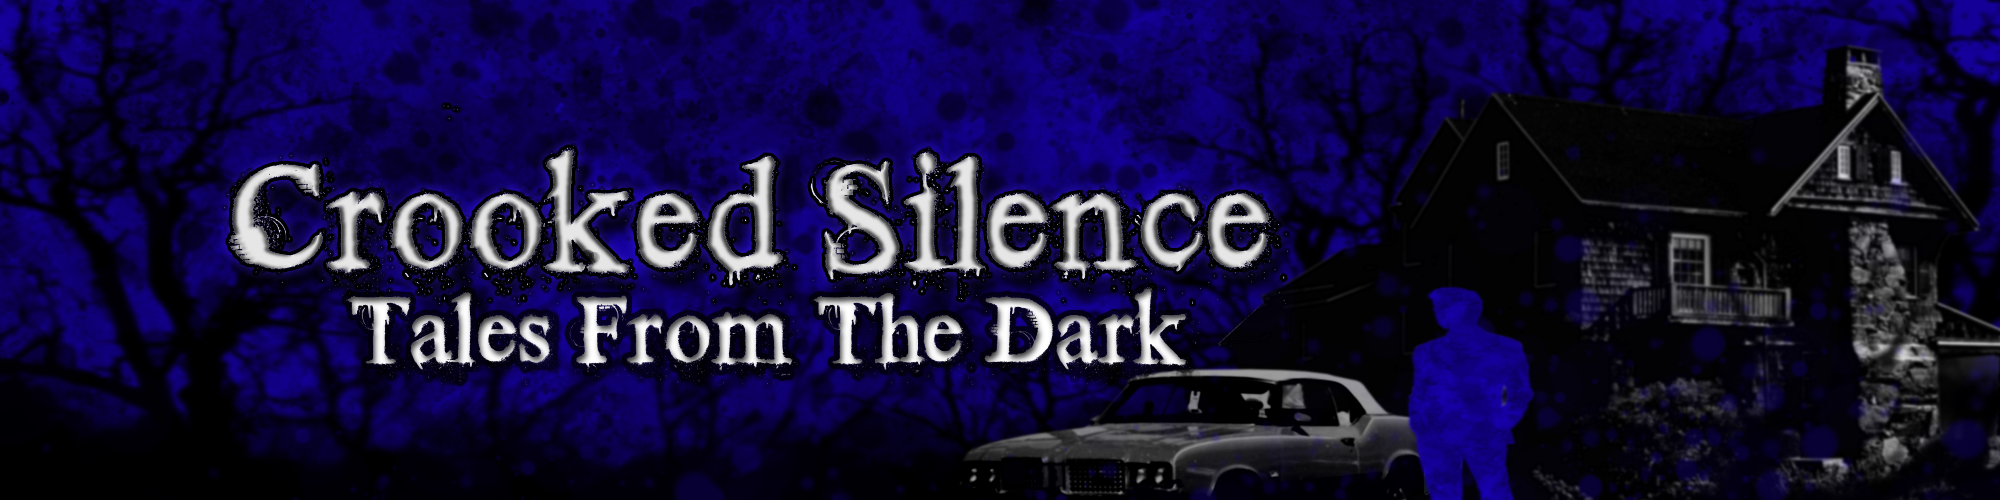 Crooked Silence: Tales From The Dark